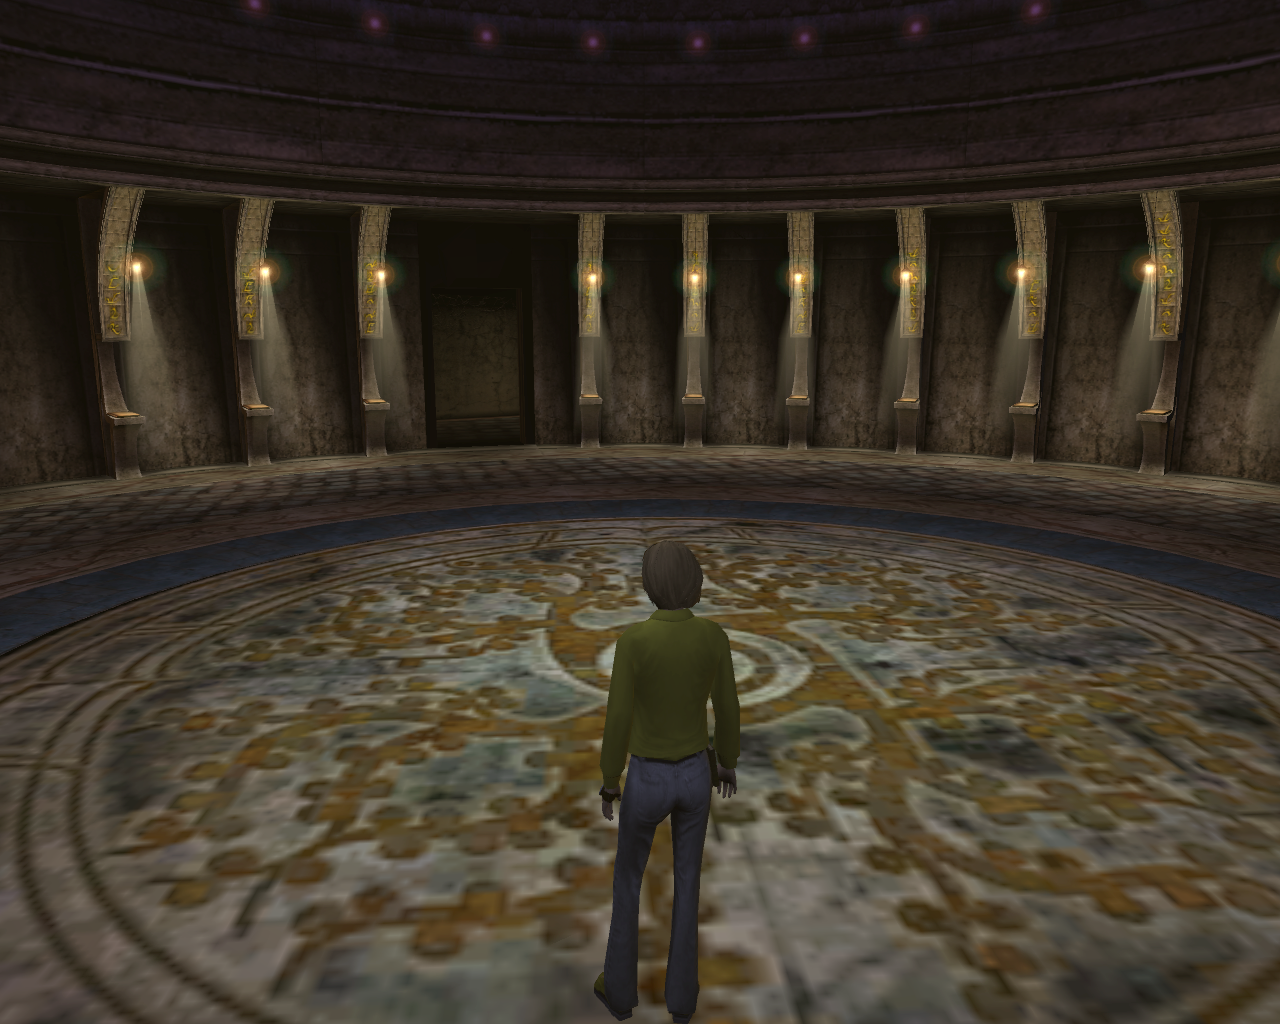 Myst Online: Uru Live Windows Books in the Hall of Kings provide a history of D'ni